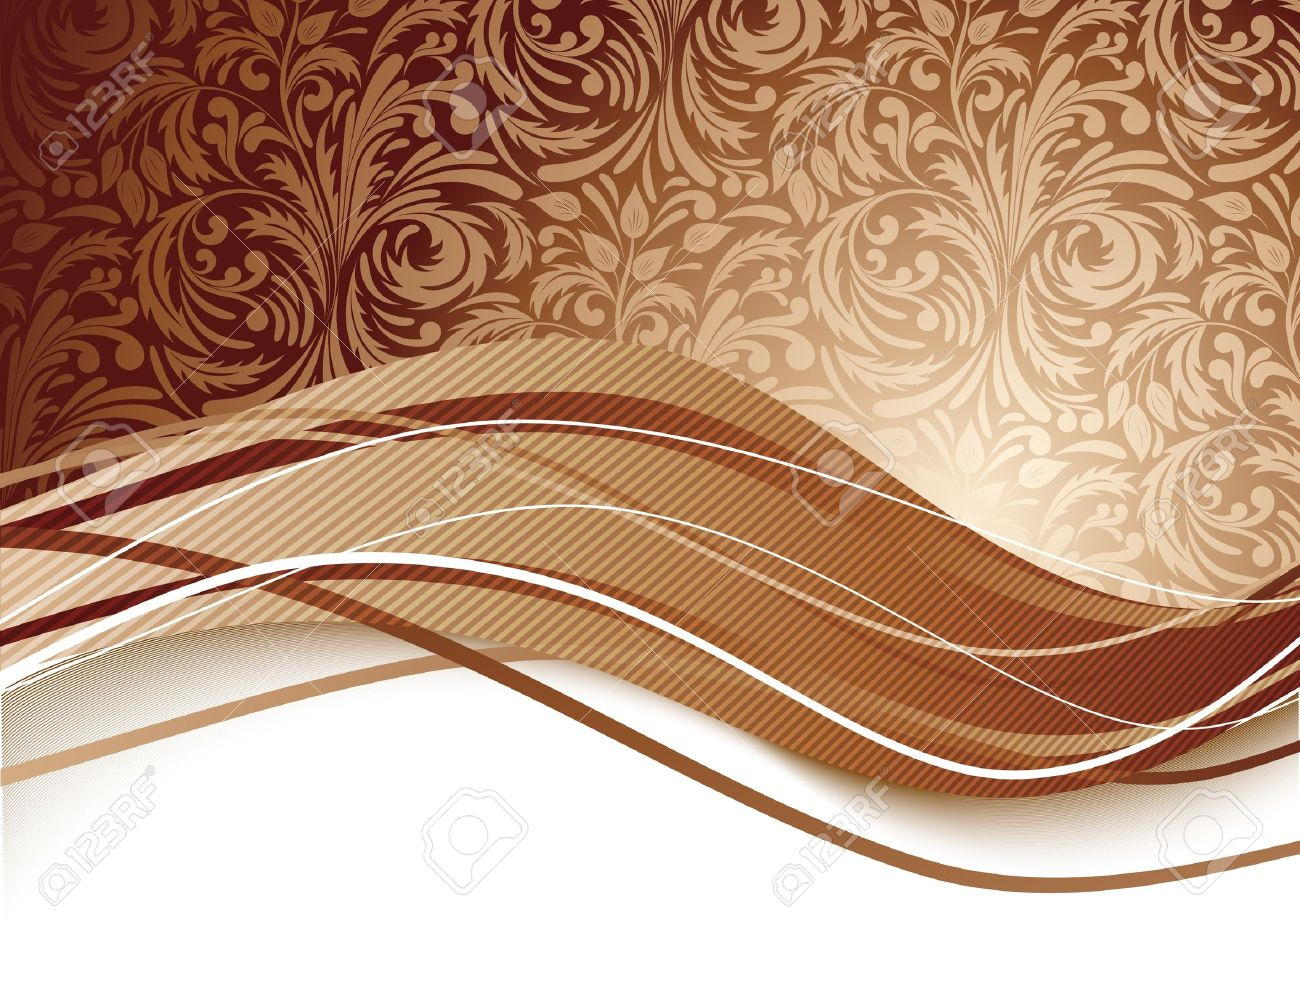 Floral background in brown color  Chocolate illustration Stock Vector - 15813235